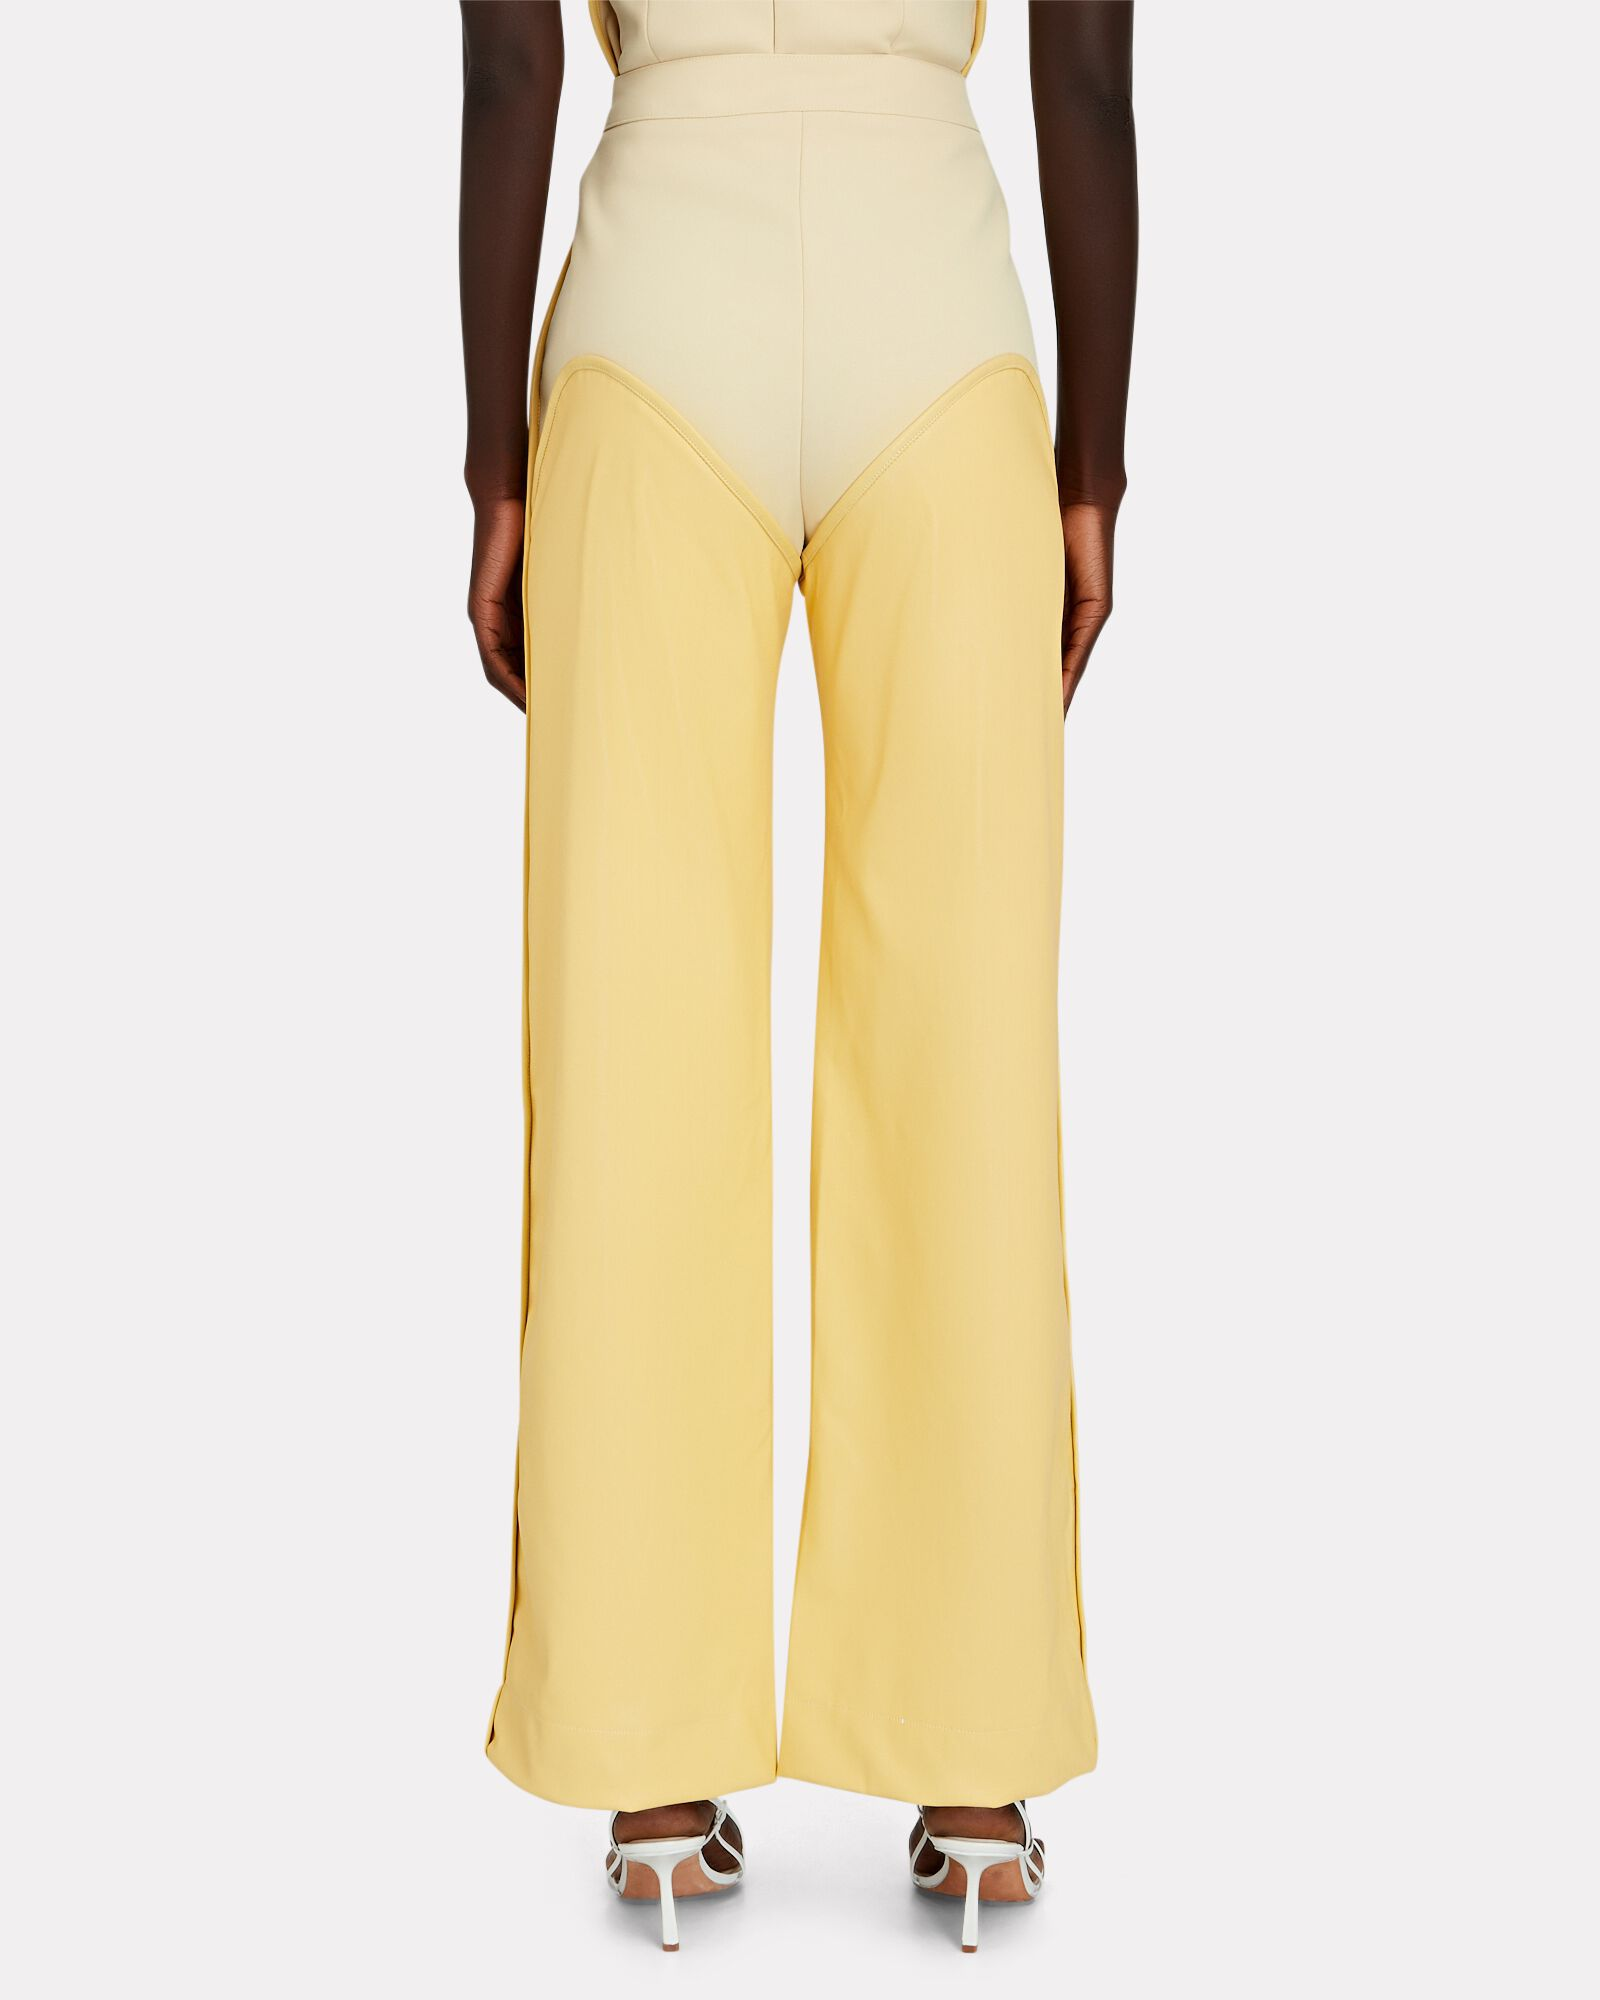 Oversized Cowboy Vegan Leather Trousers, YELLOW, hi-res